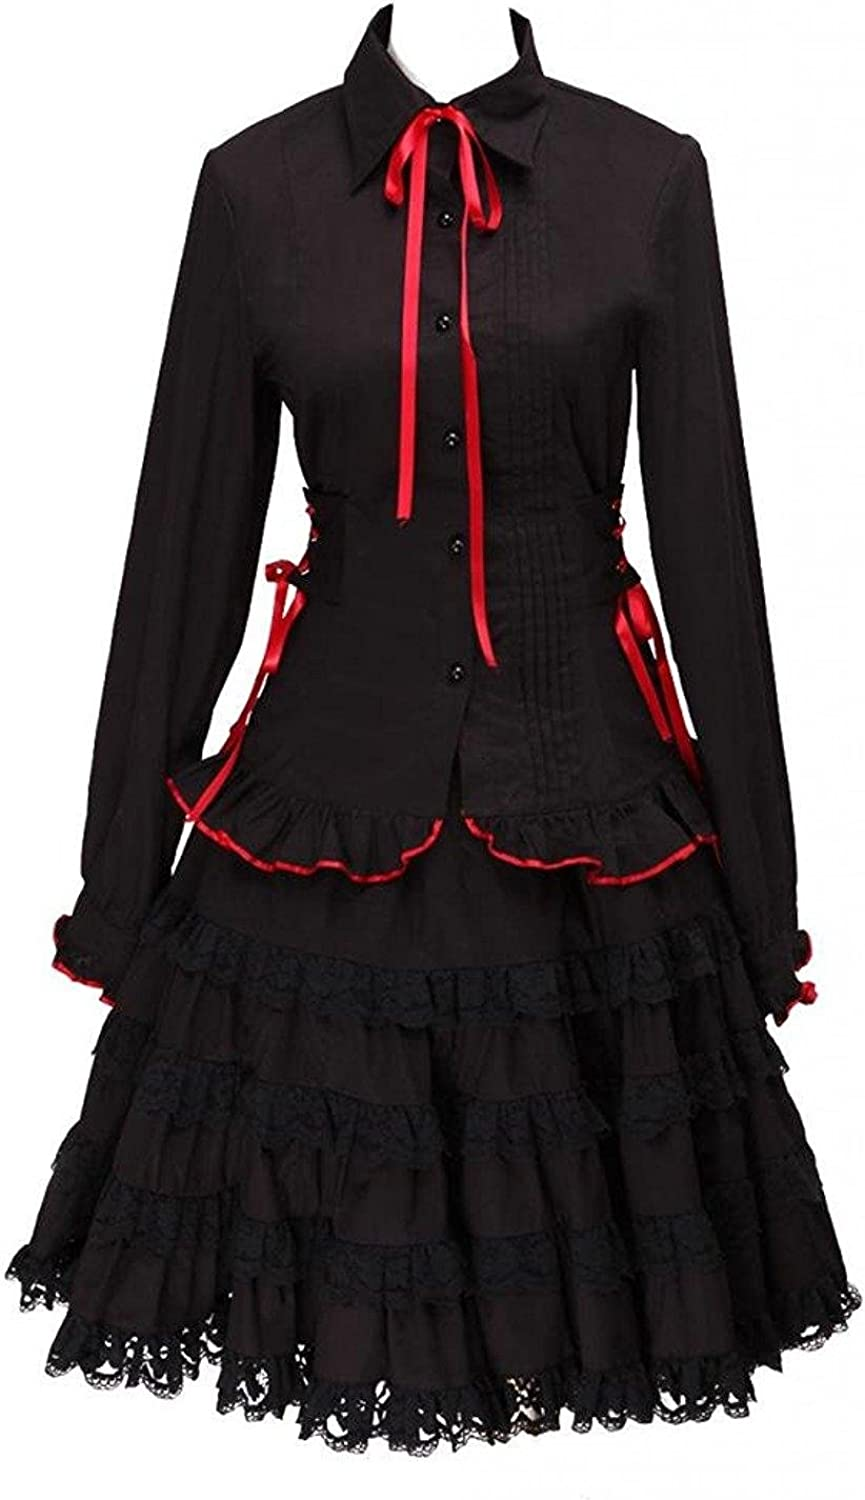 Ainclu Womens Cotton Black Long Sleeves Lolita Blouse and Ruffles Skirt Outfit